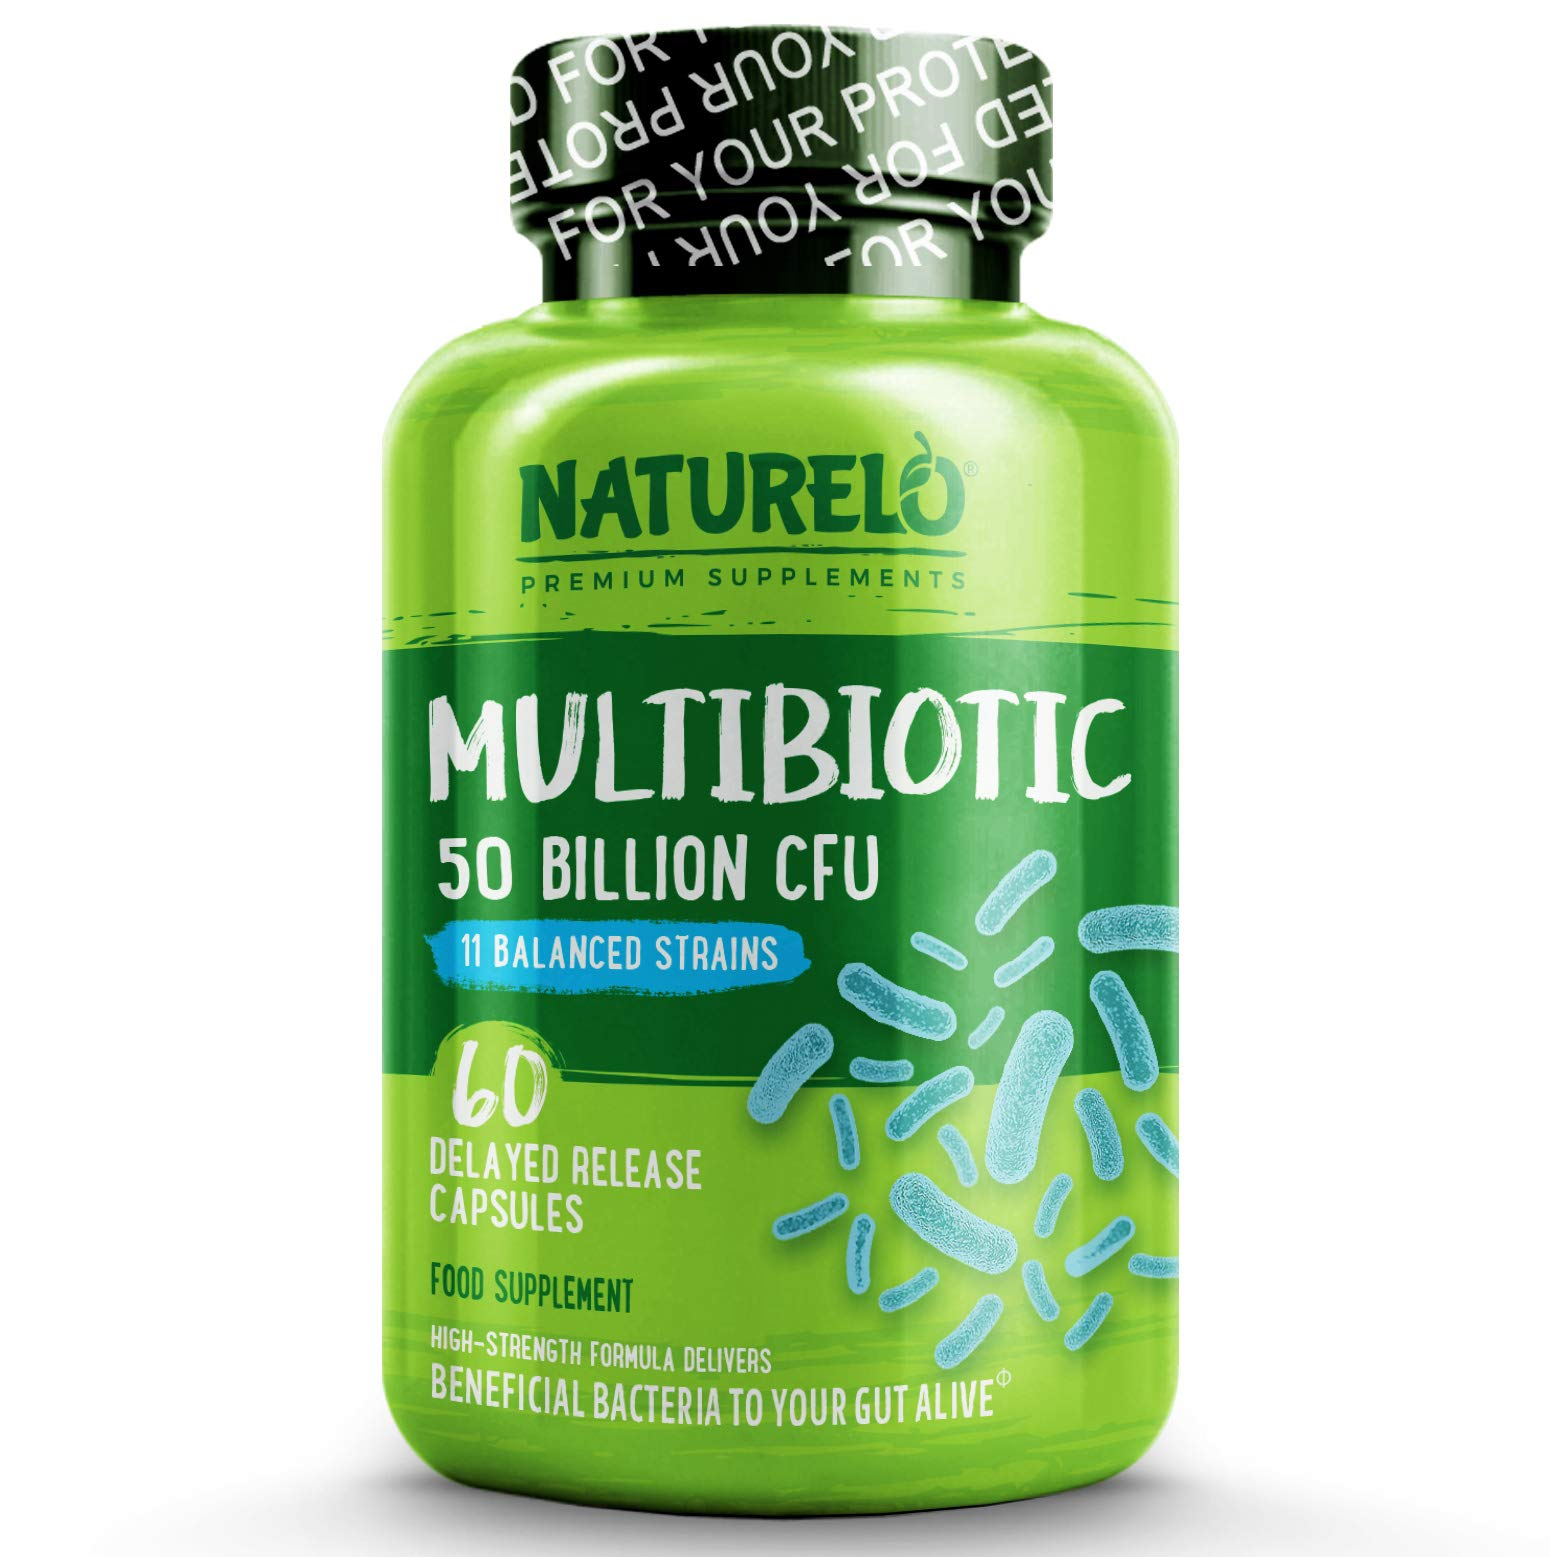 NATURELO Multibiotic - Ultra Strength - 50 Billion CFU - 11 Strains - One Daily - Best for Digestive Health and General Wellness - No Refrigeration Needed - 60 Vegan Capsules | 2 Month Supply